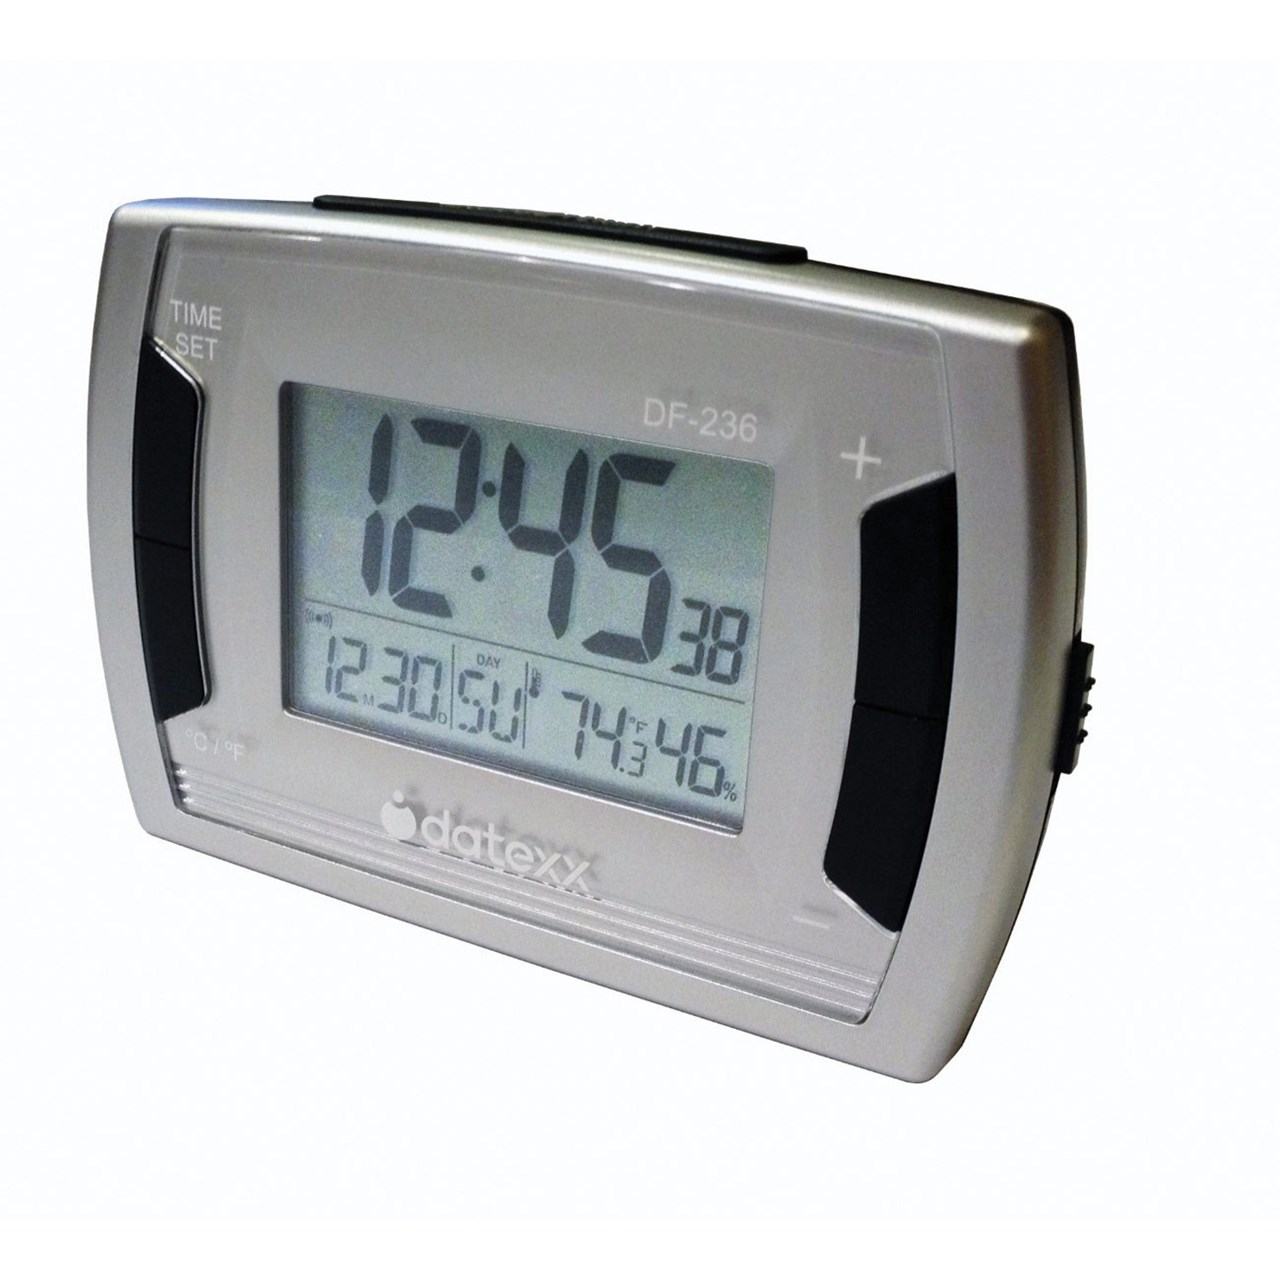 maxiaids low vision alarm clock with indoor thermometer. Black Bedroom Furniture Sets. Home Design Ideas